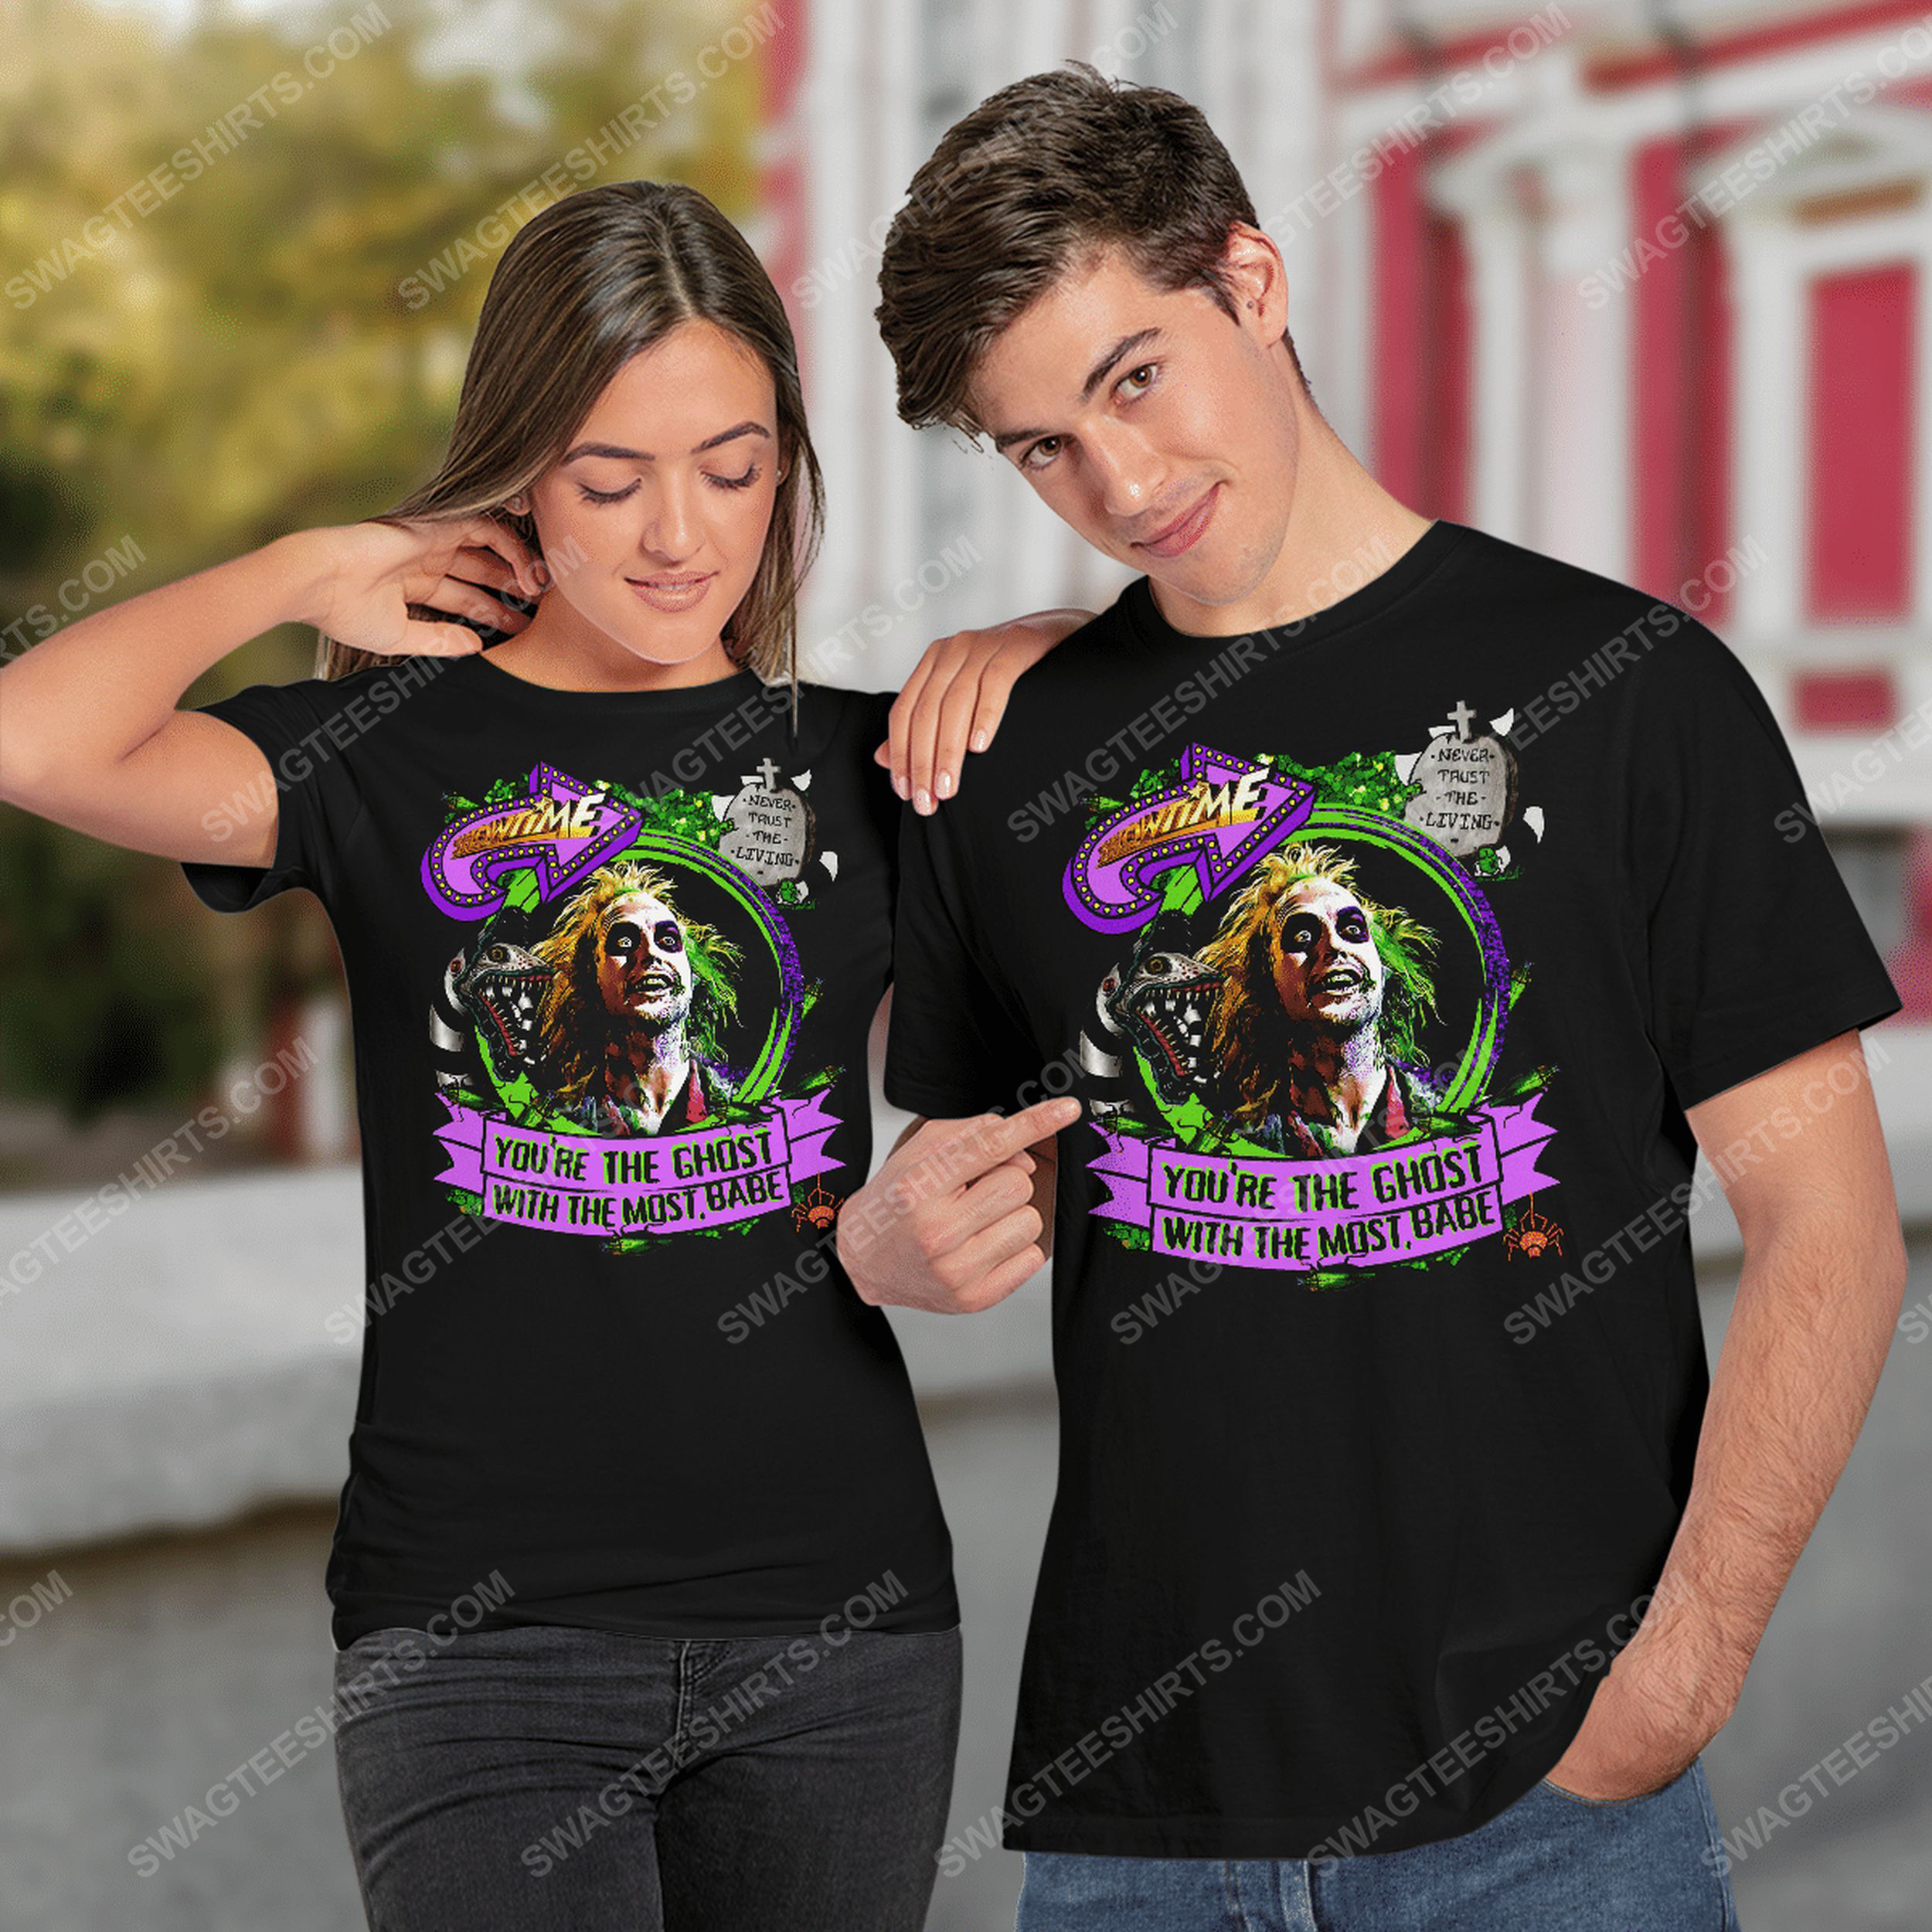 Halloween beetlejuice you're the ghost with the most babe tshirt(1)